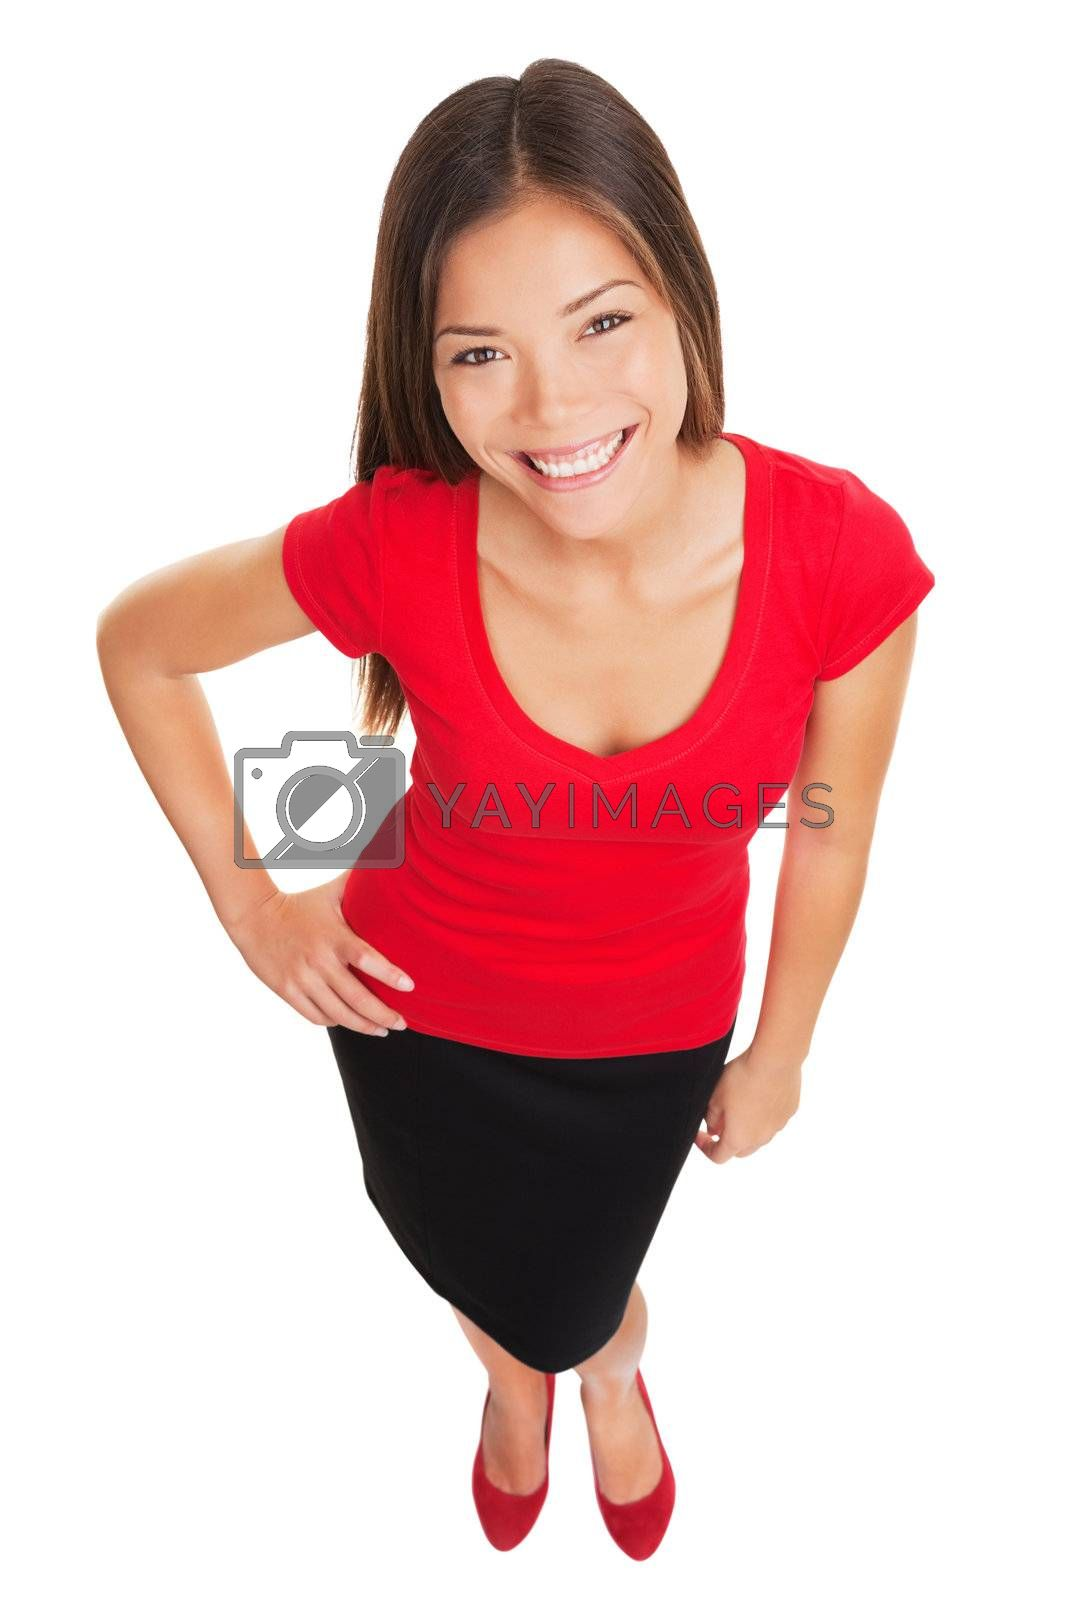 Beautiful stylish woman with charm smiling up at the camera with a lovely broad smile as she poses with her hand on her hip in a full body high angle portrait isolated on white. Asian Caucasian girl.